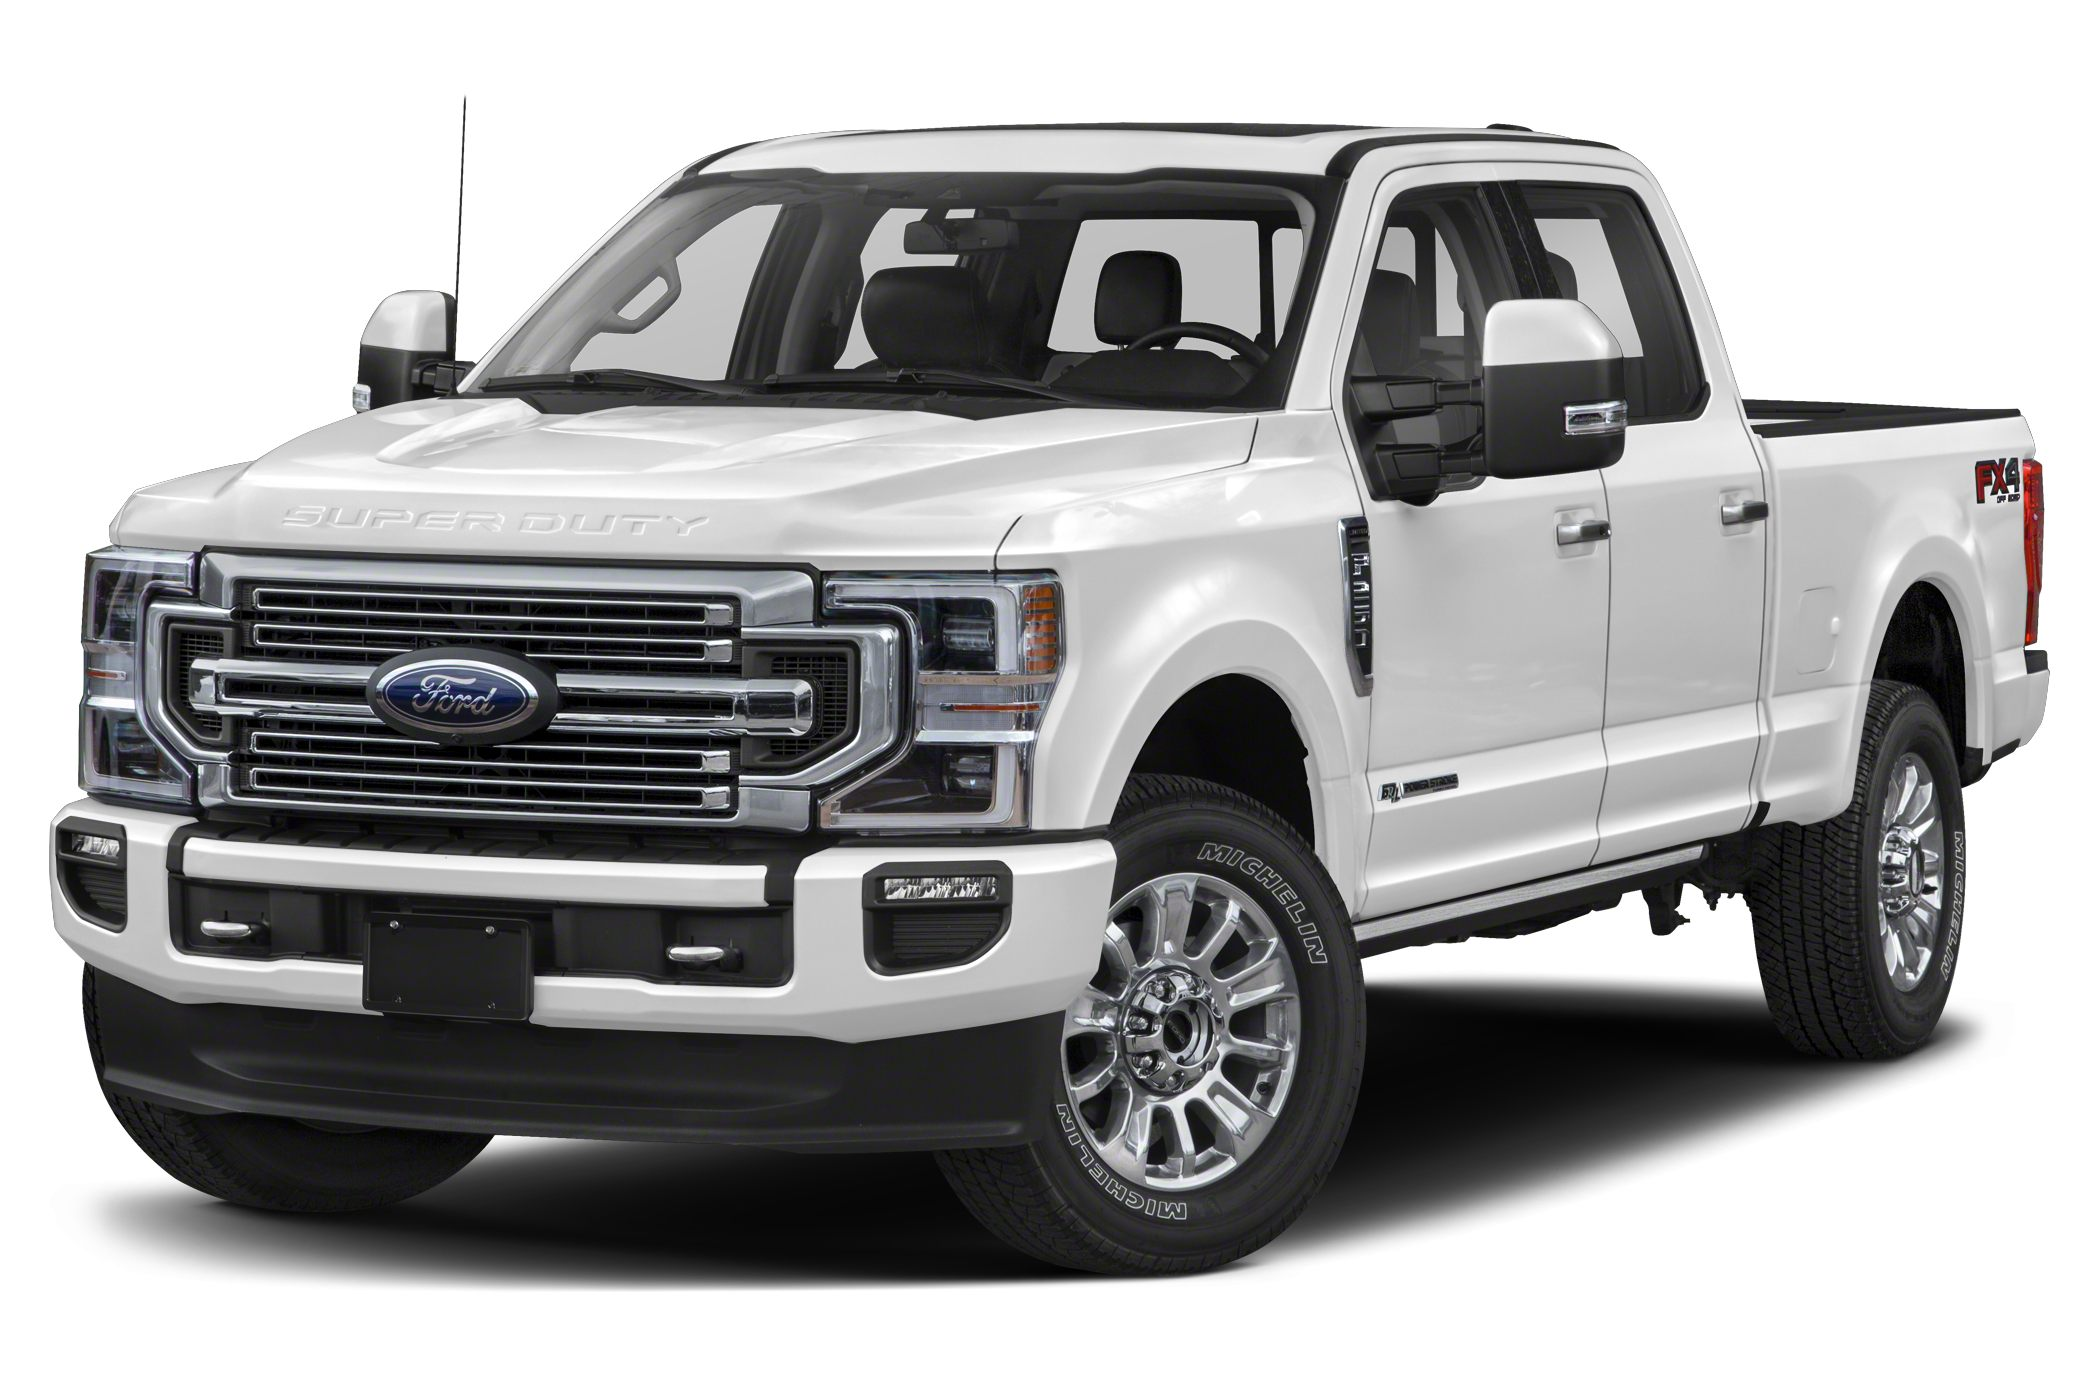 2020 Ford F-350 Limited 4x4 SD Crew Cab 8 ft. box 176 in. WB DRW